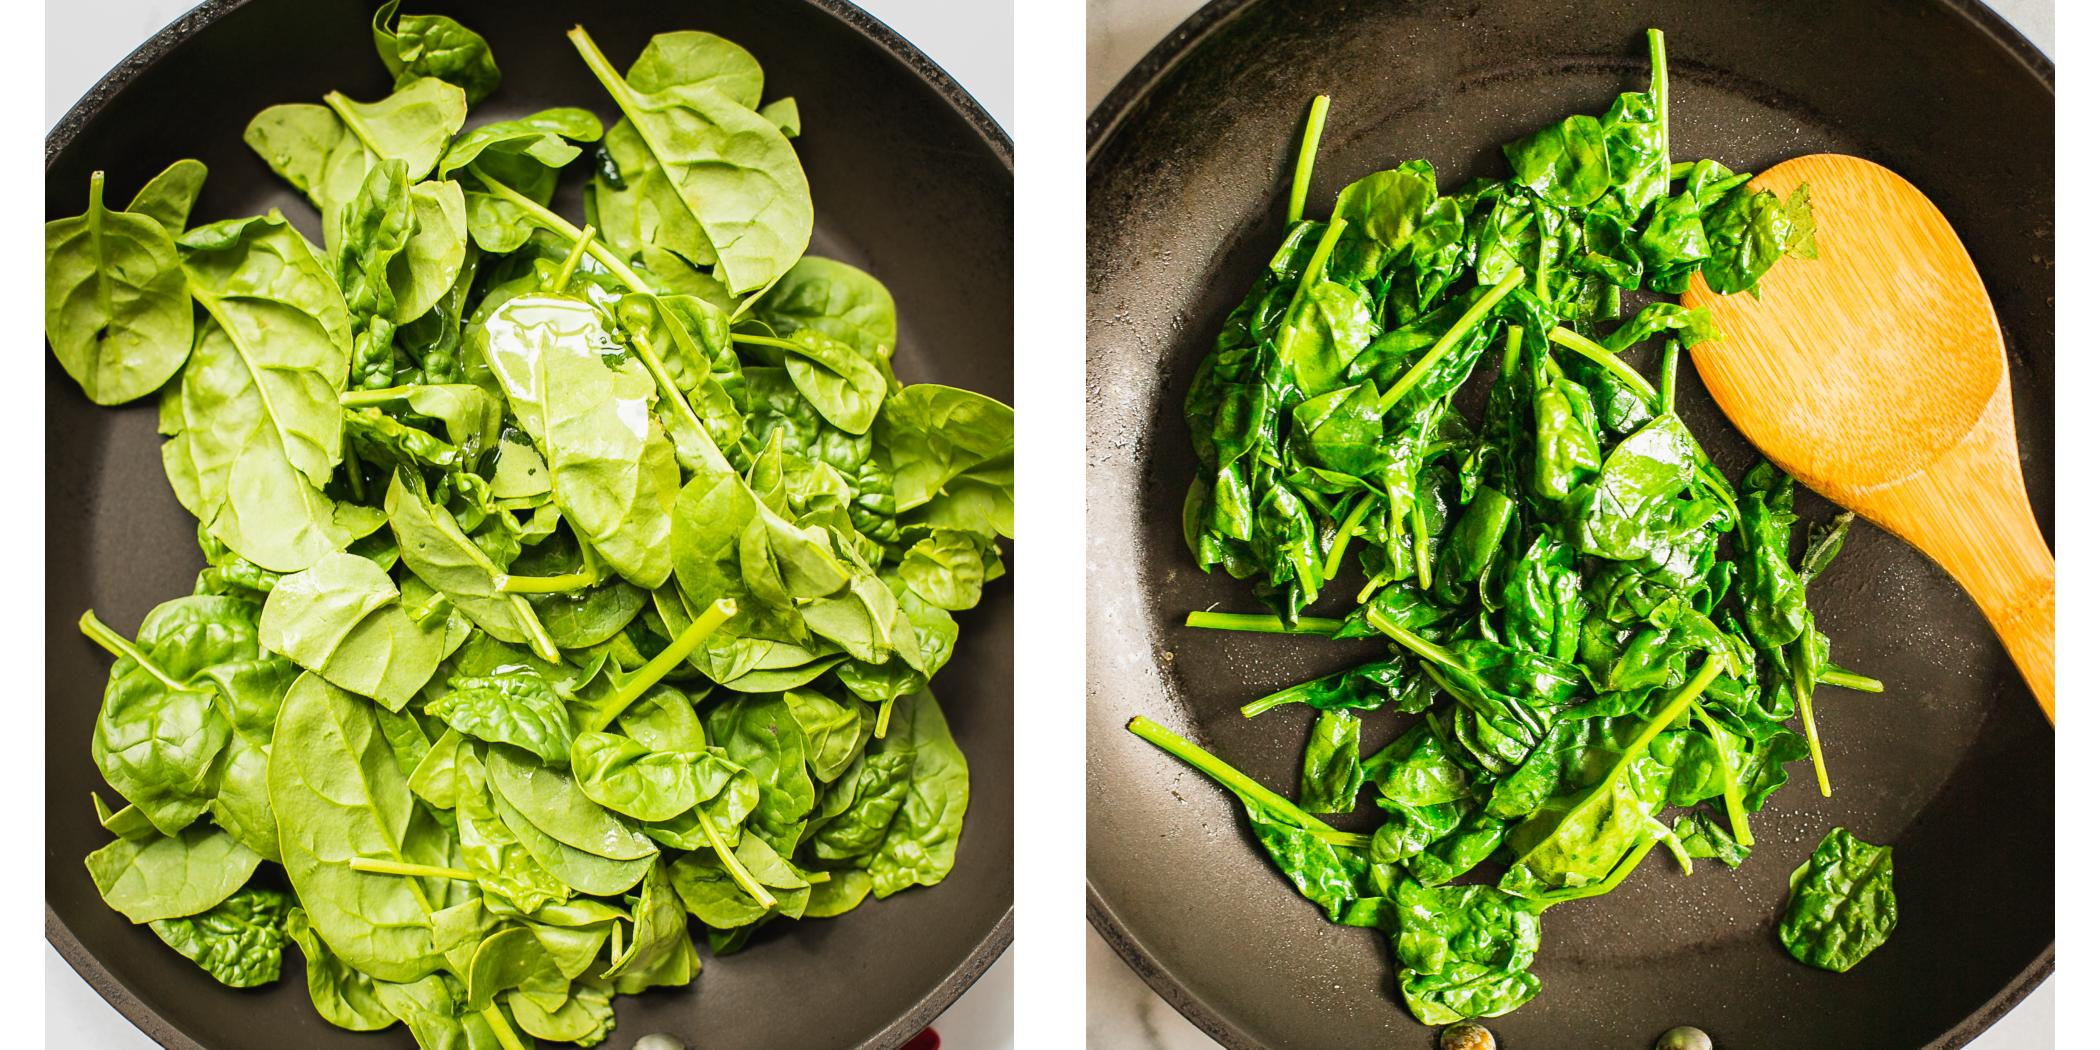 Before and After photo of baby spinach sautéed and raw.